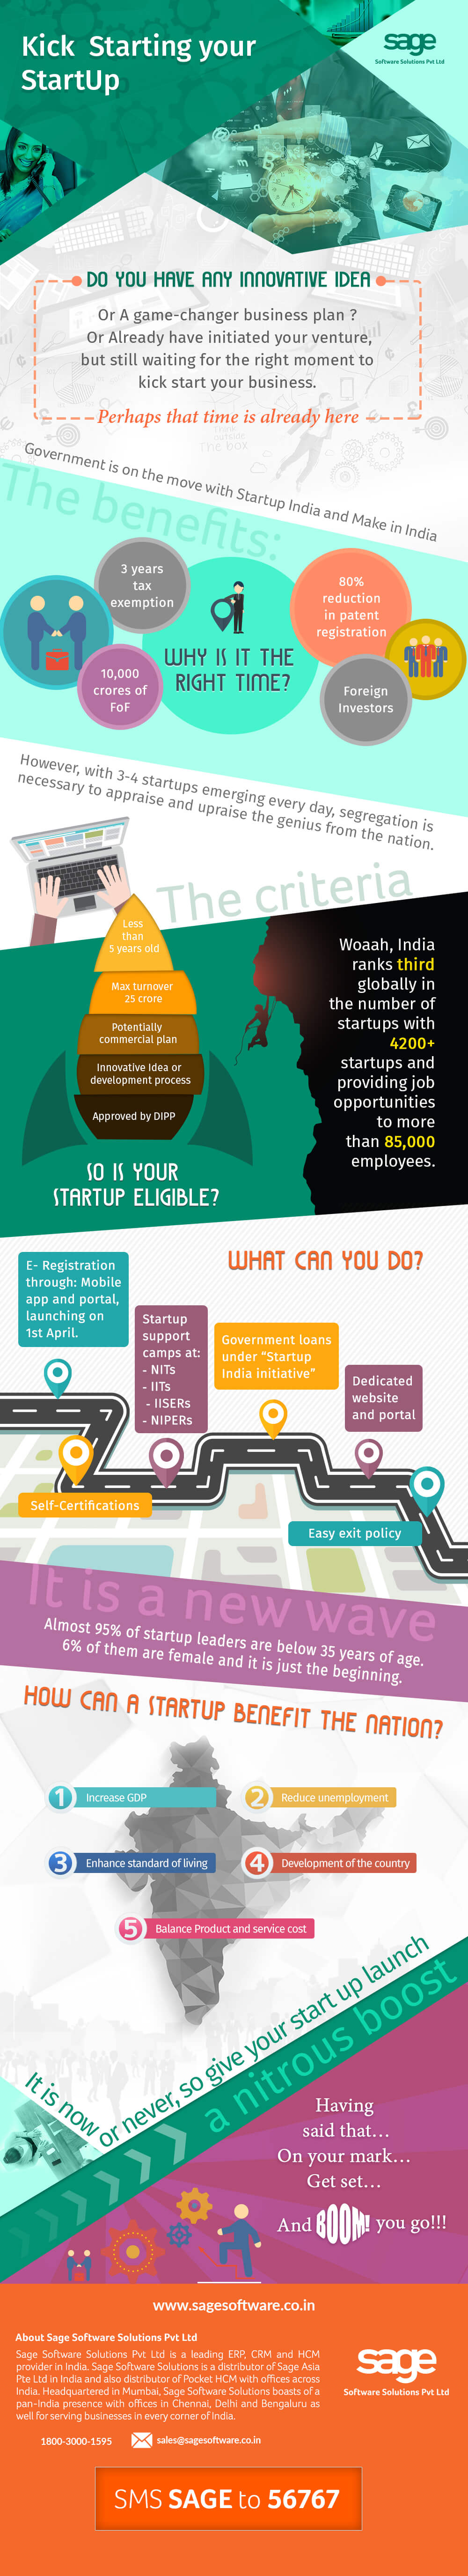 Kick-Starting-your-Start-Up-infographic-plaza